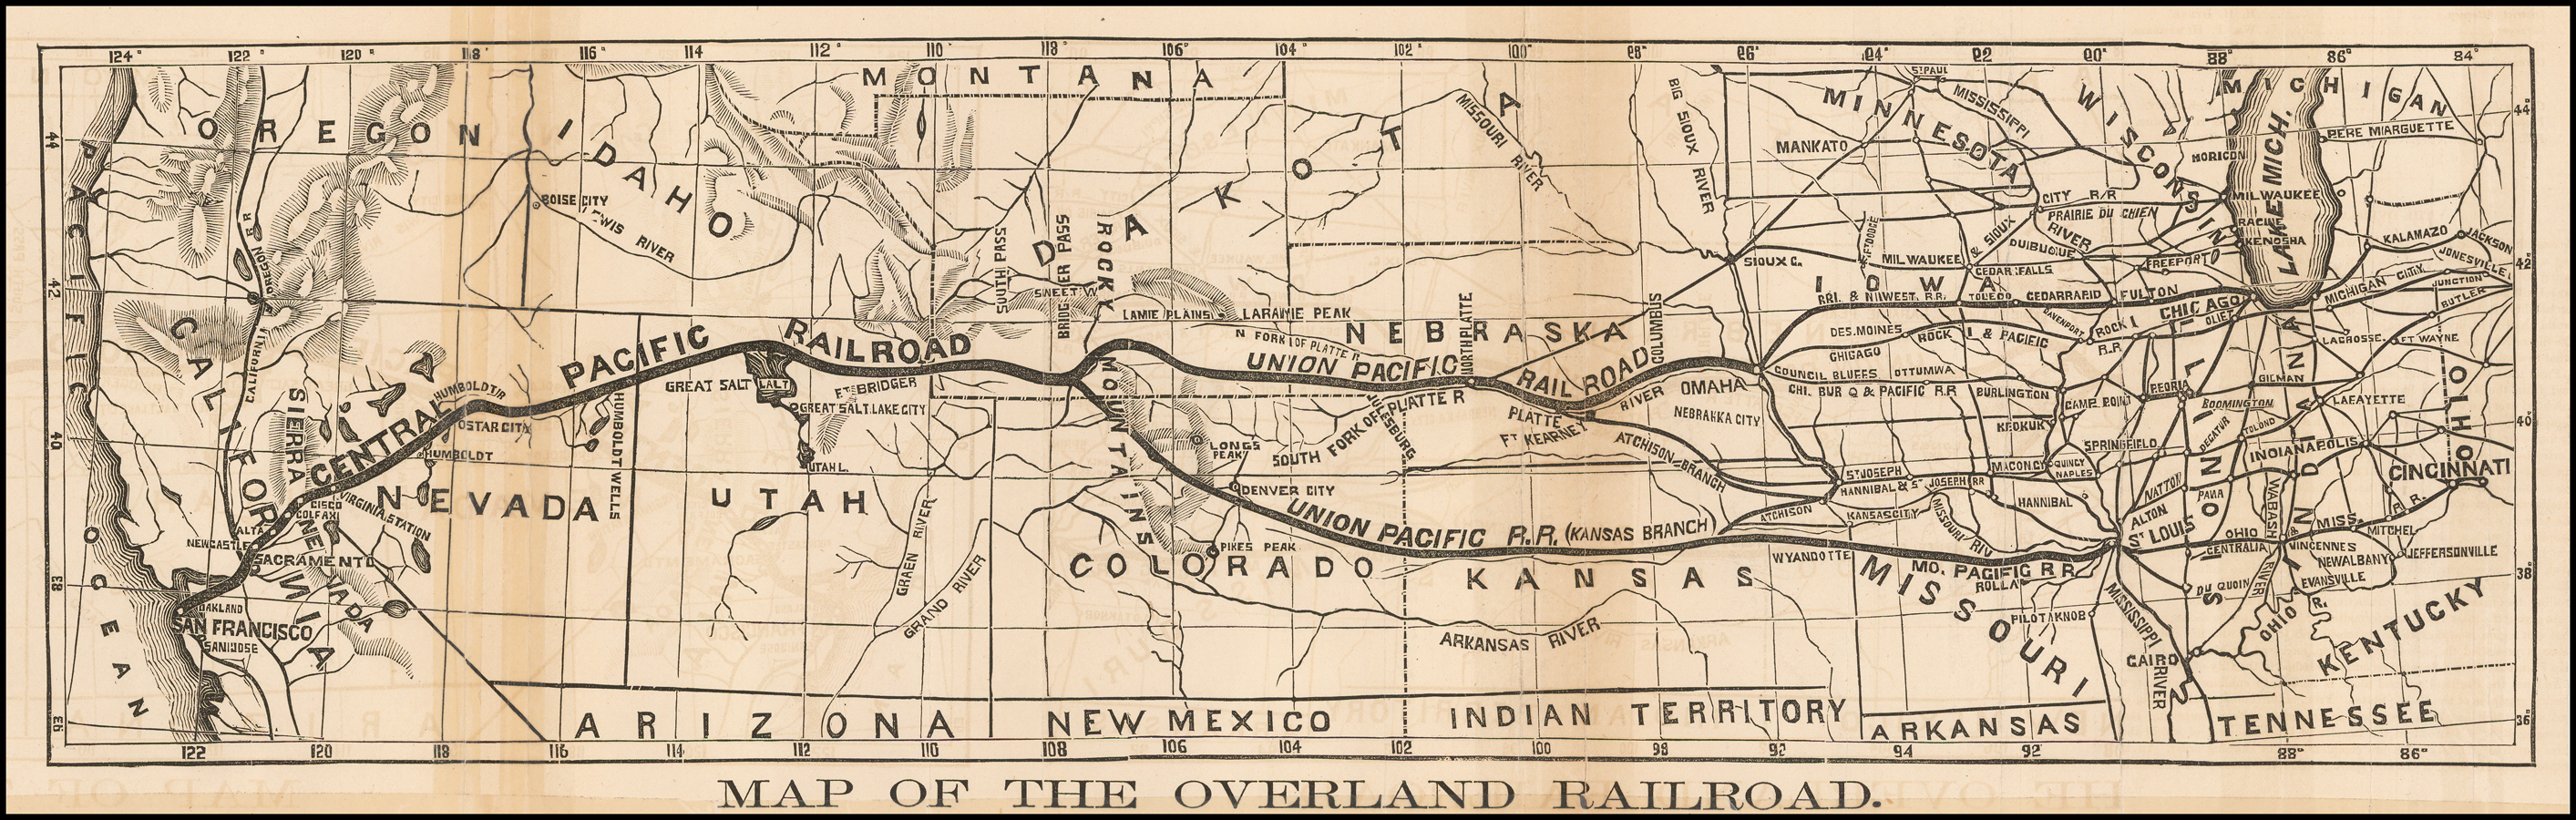 Map of the Overland Railroad (Early Central Pacific RR ... Union Pacific Railroad Map Utah on union pacific business cars, union pacific idaho map, union pacific service map, rio grande railroad map utah, map of utah, union pacific rail map, union pacific train routes, gold spike utah, union pacific passenger trains, usgs map utah, union pacific dome car, union pacific track map, union pacific overland, union pacific network map, union pacific salt lake city, union pacific railway map, union pacific elko nv, union pacific nebraska, union pacific dining car menus, union pacific subdivisions map,